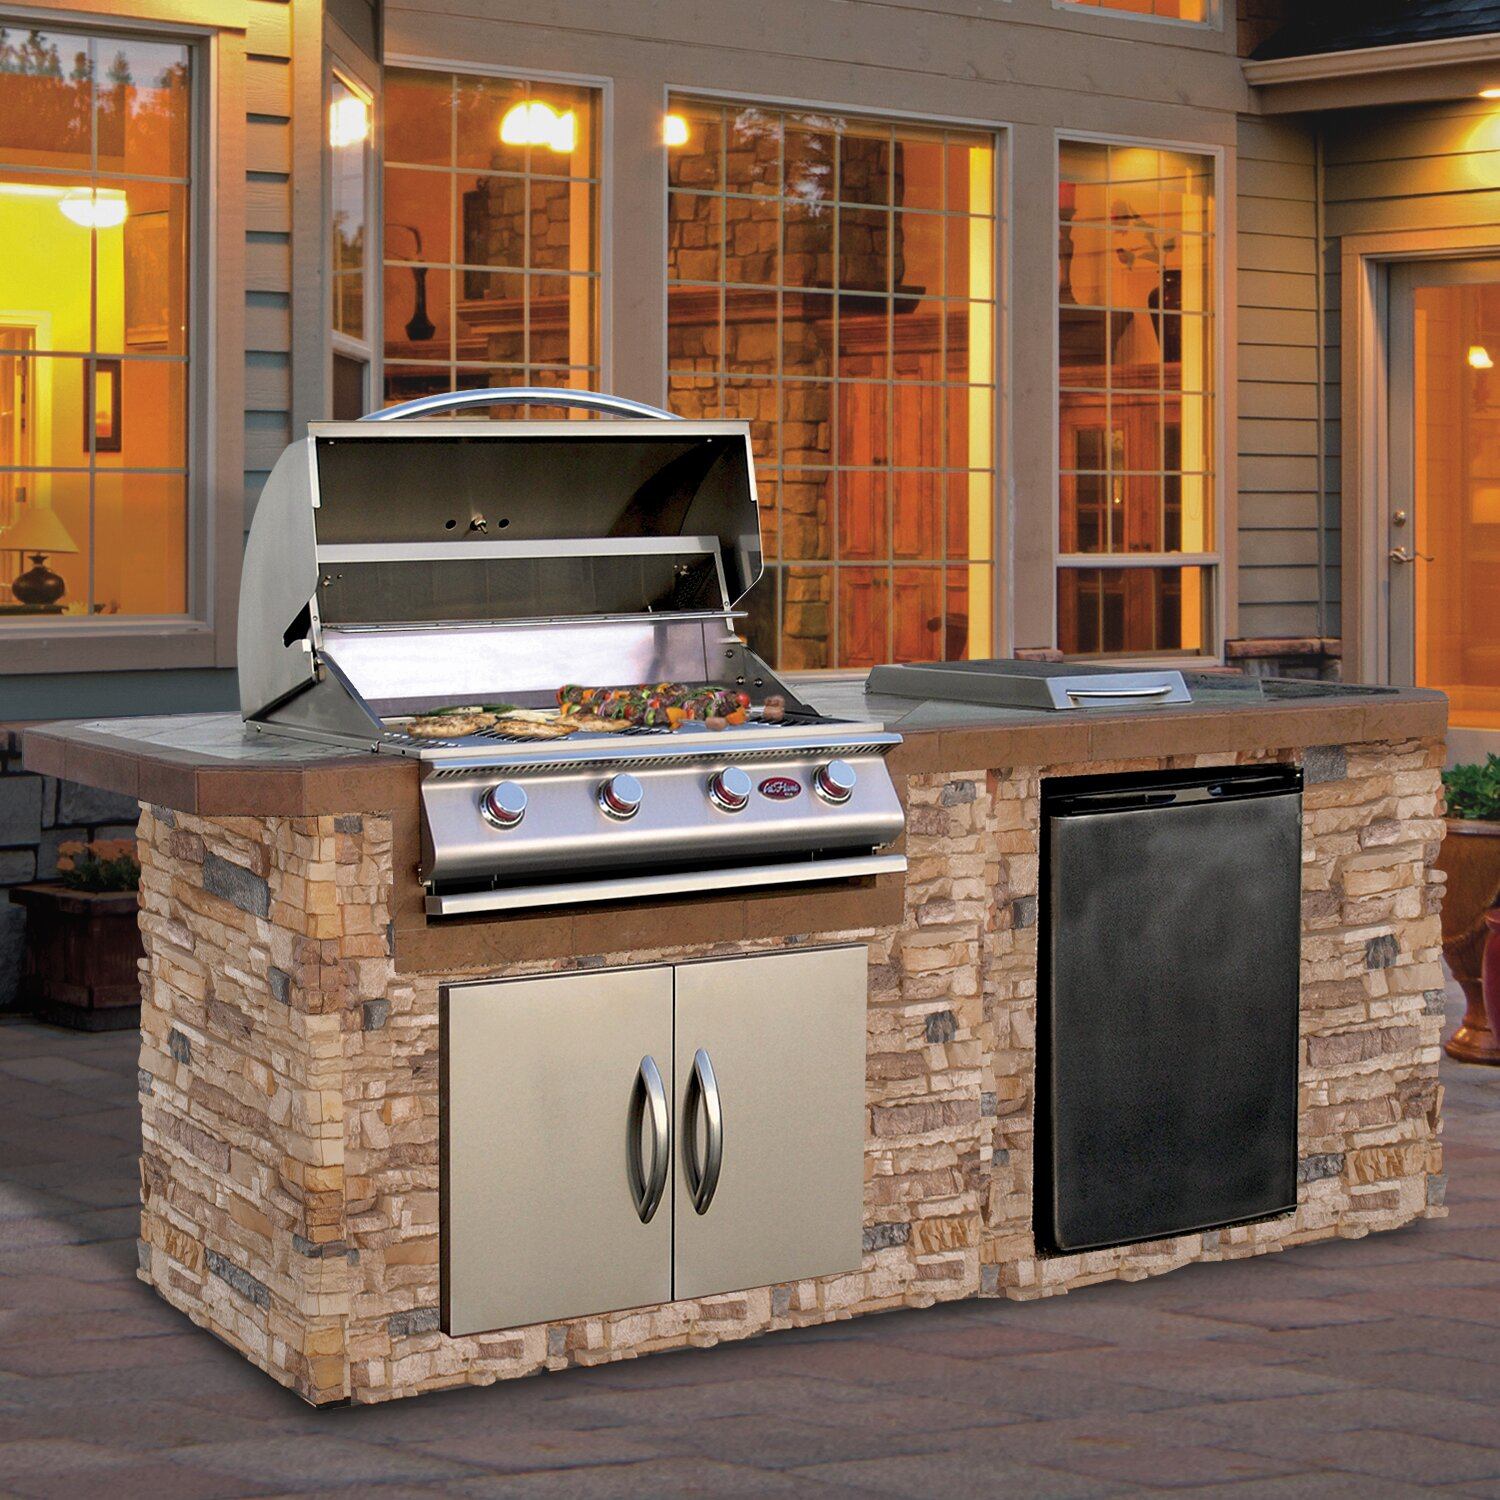 "6 Ft Kitchen Island: 72"" 4-Burner Built-In Liquid Propane Gas Grill"